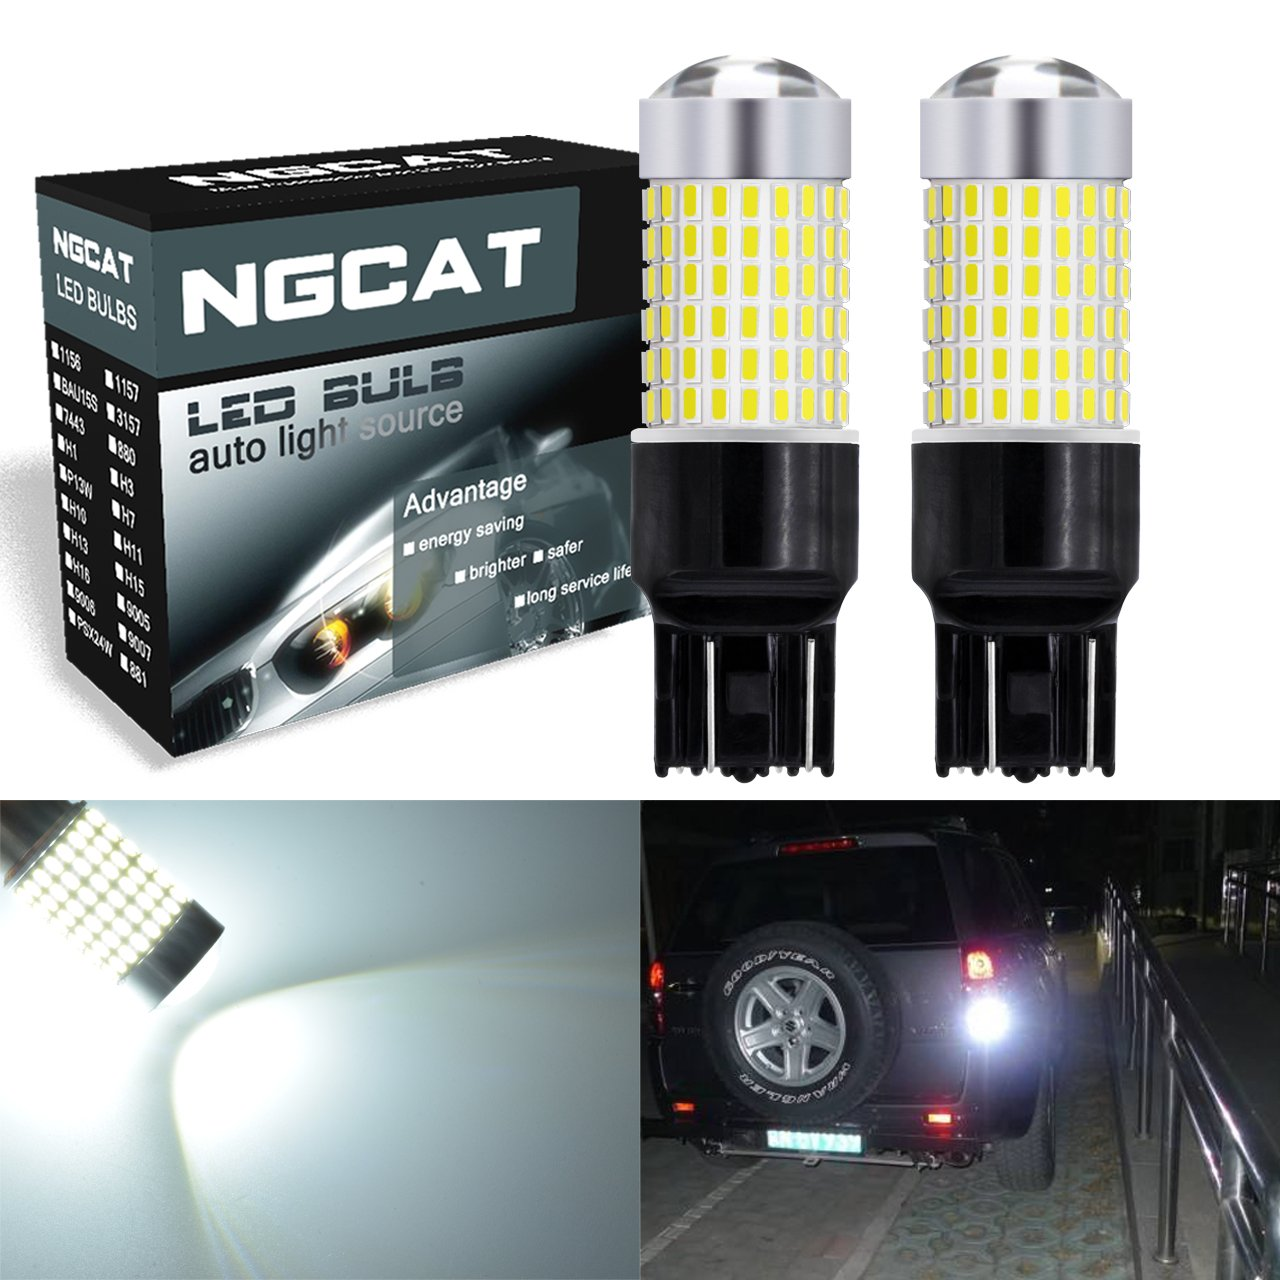 NGCAT 7443 Led Bulb 2PCS 1500 Lumens 3014SMD 144-EX Chipsets 7440 T20 Super Bright LED Bulbs with Lens Projector Automotive Exterior Turn Signals Back Up Reverse Lights Tail Lights, Xenon White 12-24V